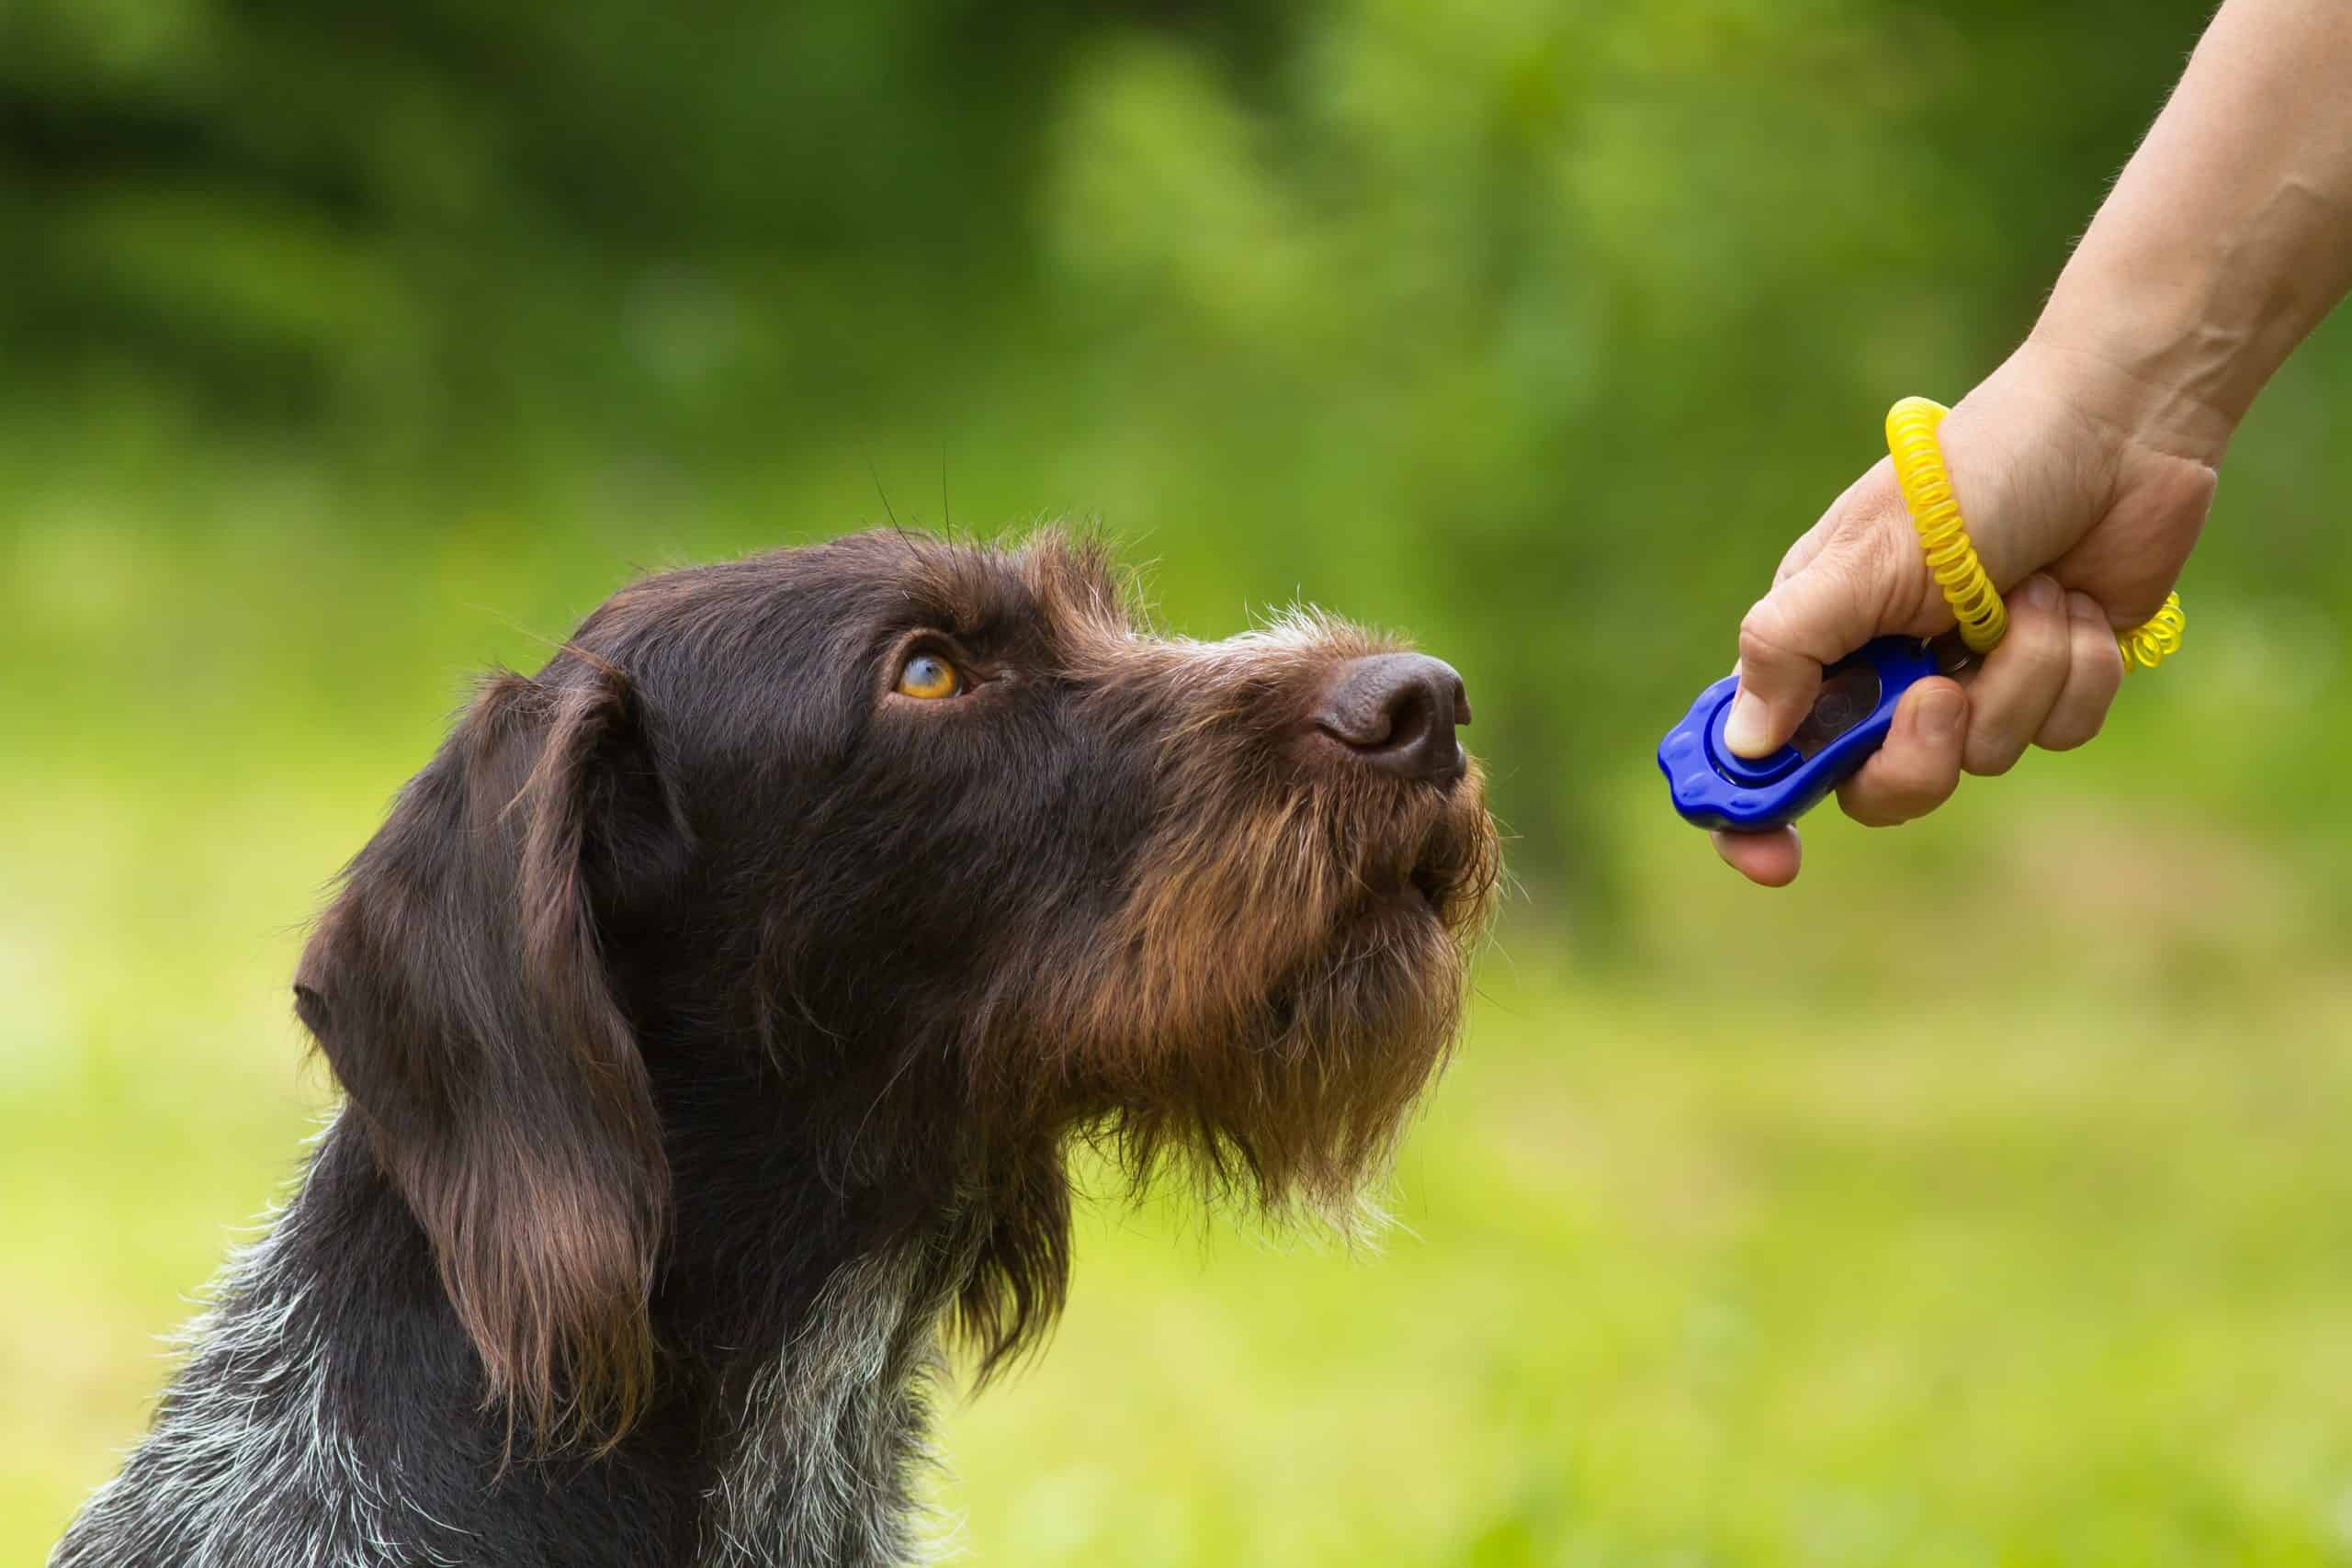 The German Wirehaired Pointer can learn simple and complex commands. If you plan to hunt with the dog, pay attention to cancellation commands and introduce distractions like smells, sounds, and other people during training.